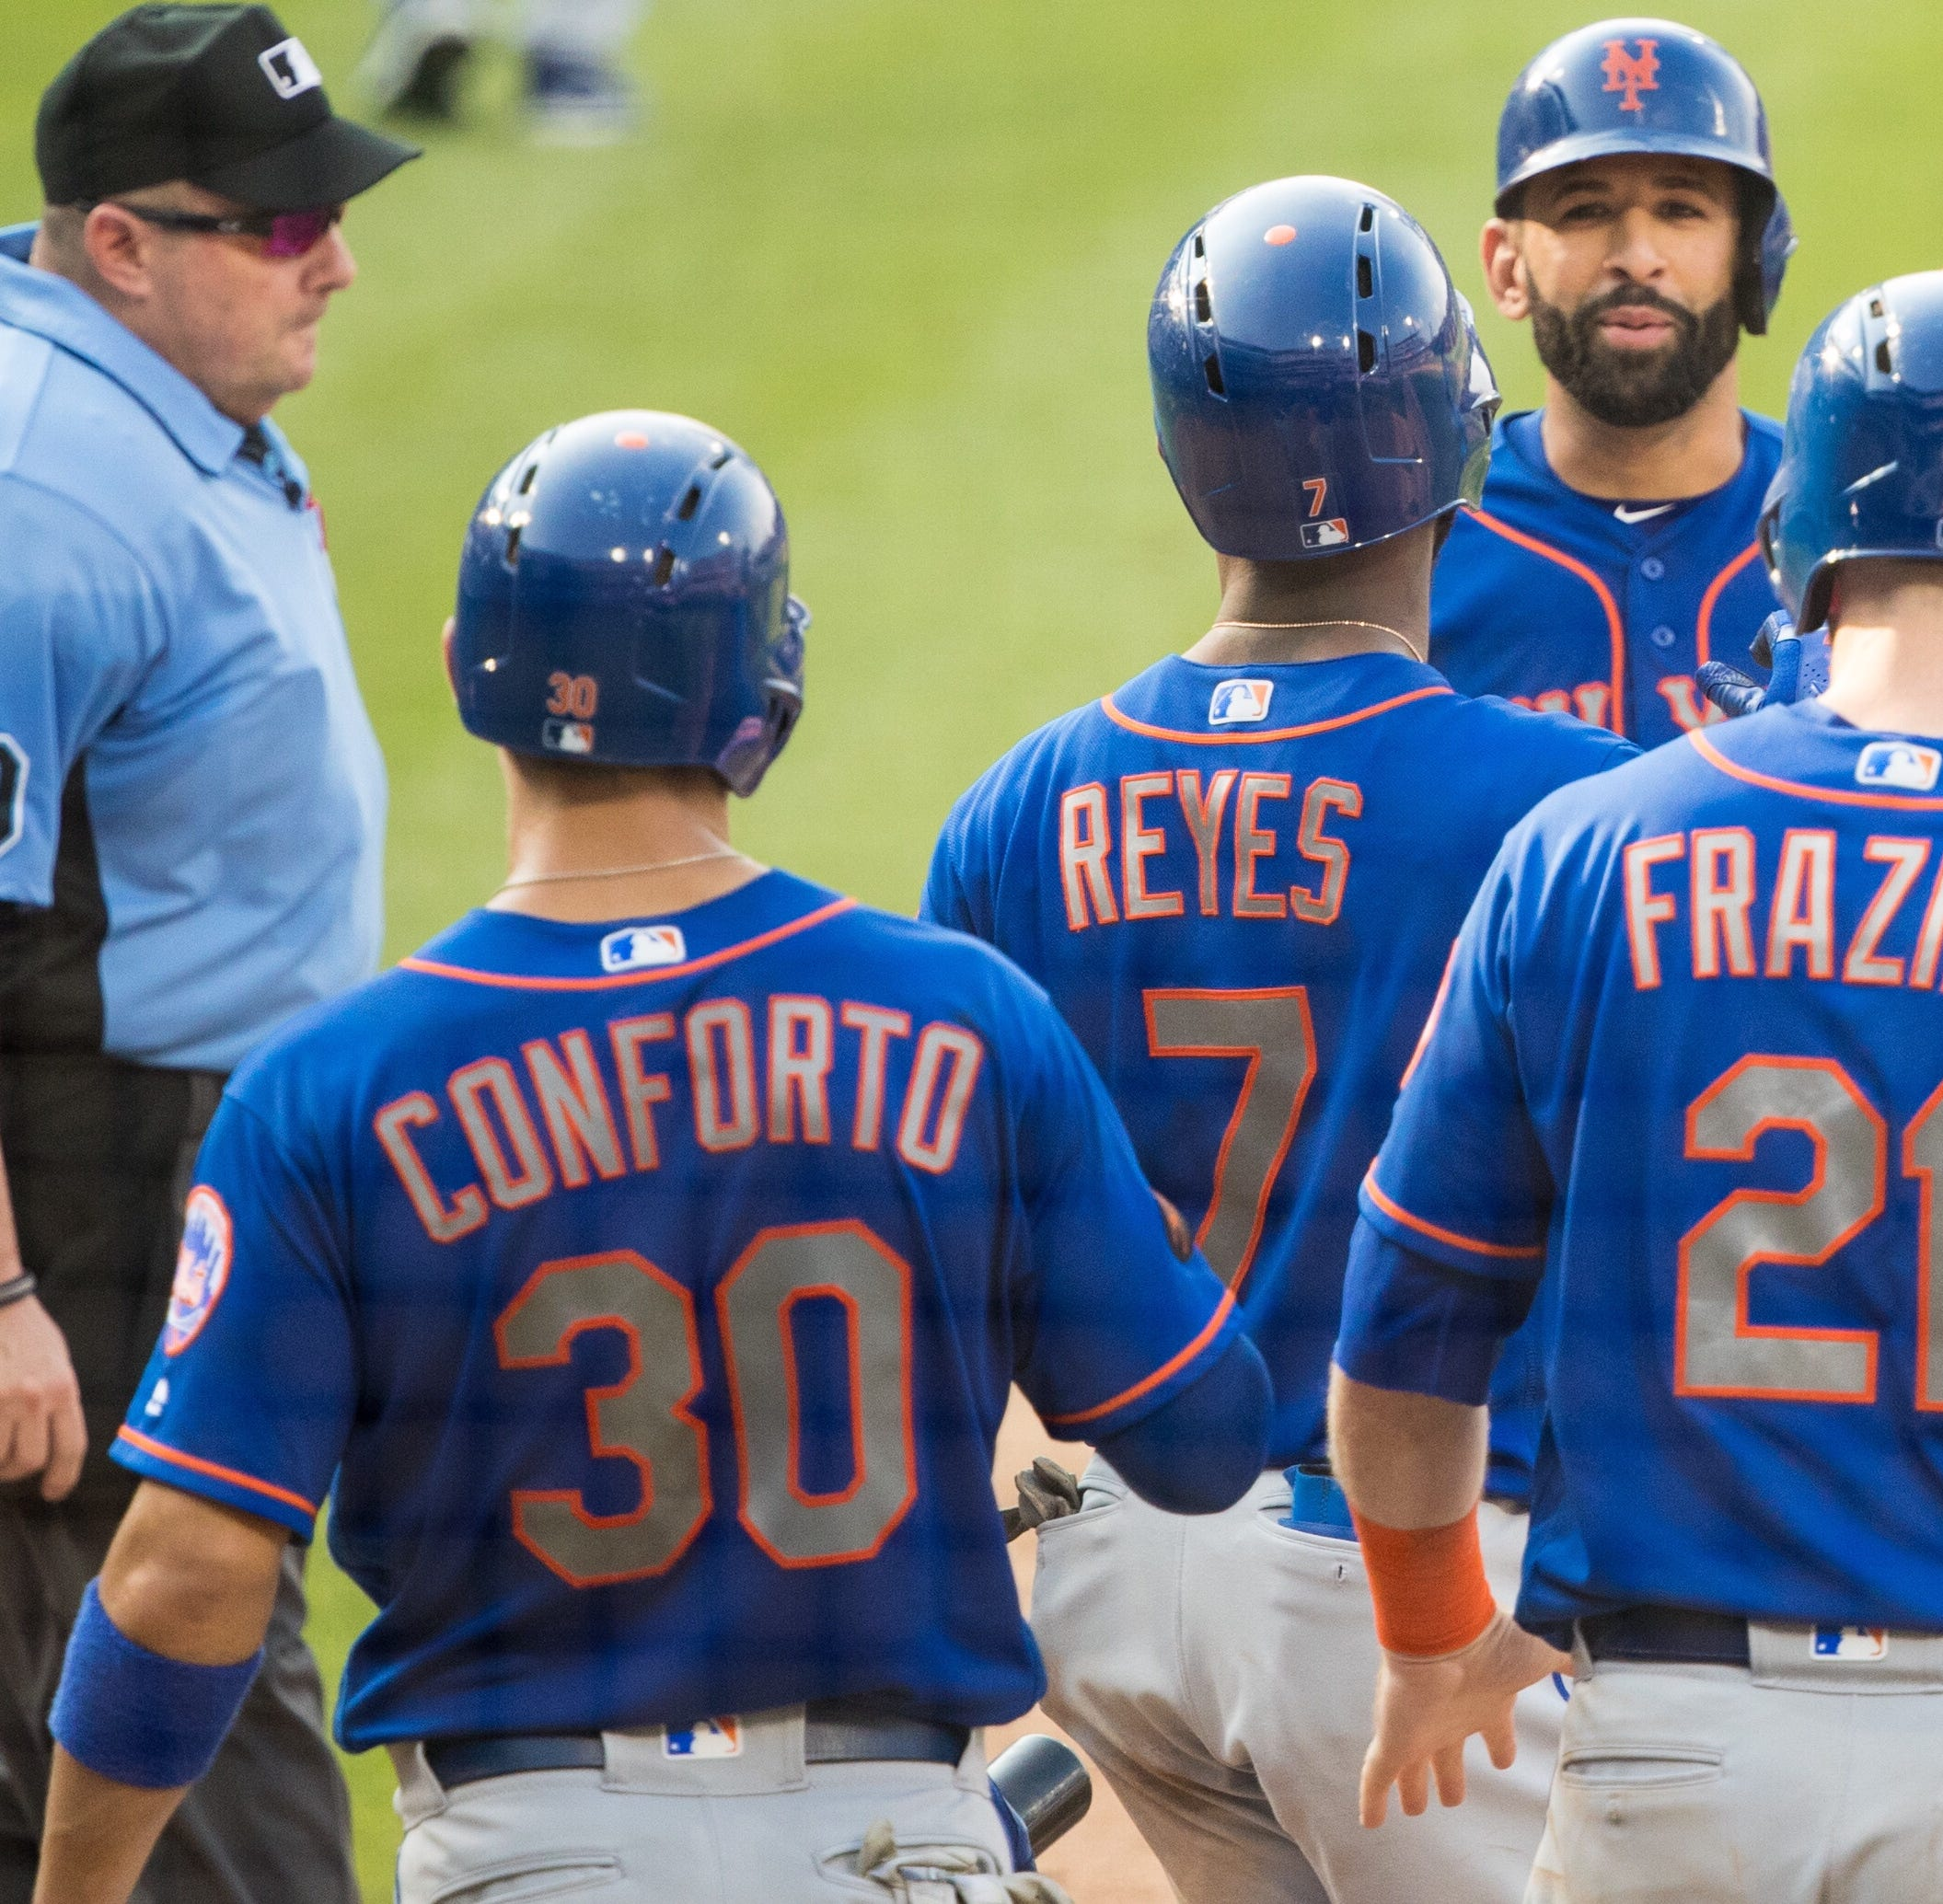 NY Mets set franchise scoring record in first game with Phillies, but fall in nightcap